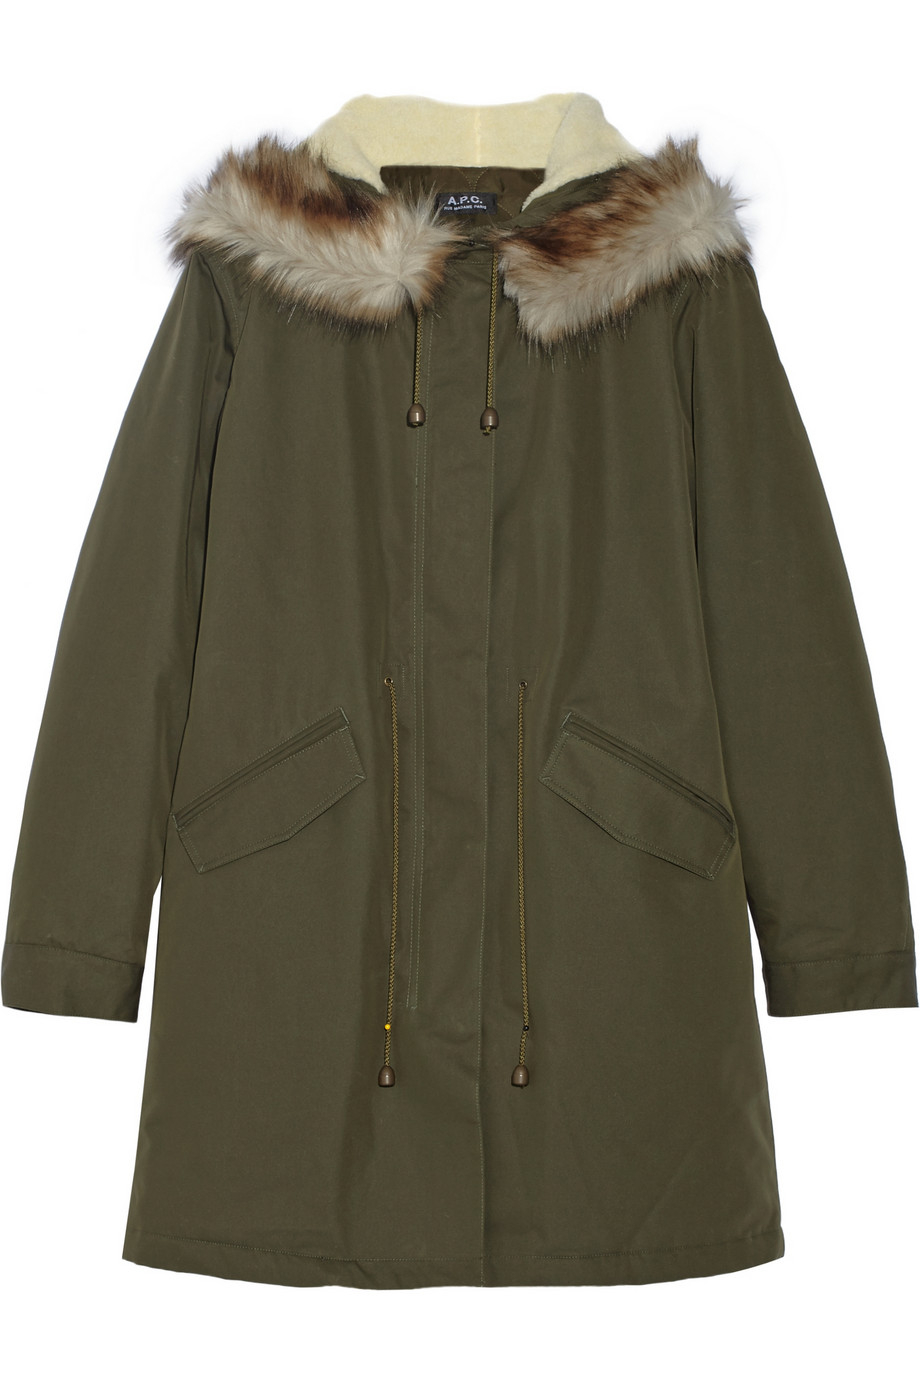 A.p.c. Mod Faux Fur-trimmed Cotton-blend Twill Parka in Green | Lyst